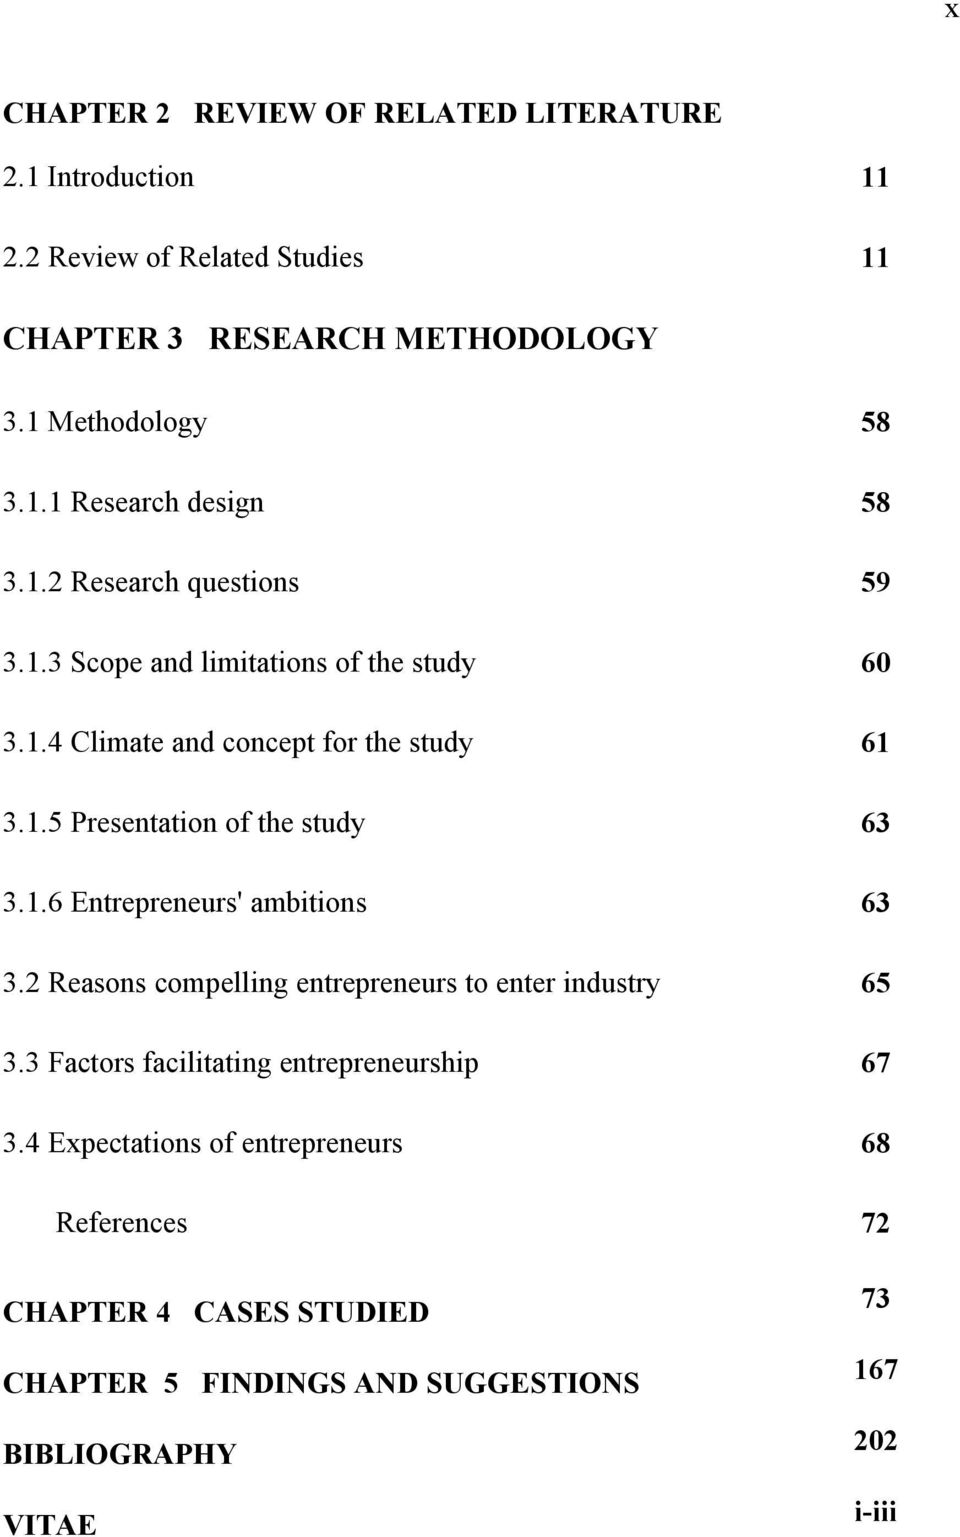 Women business thesis paper